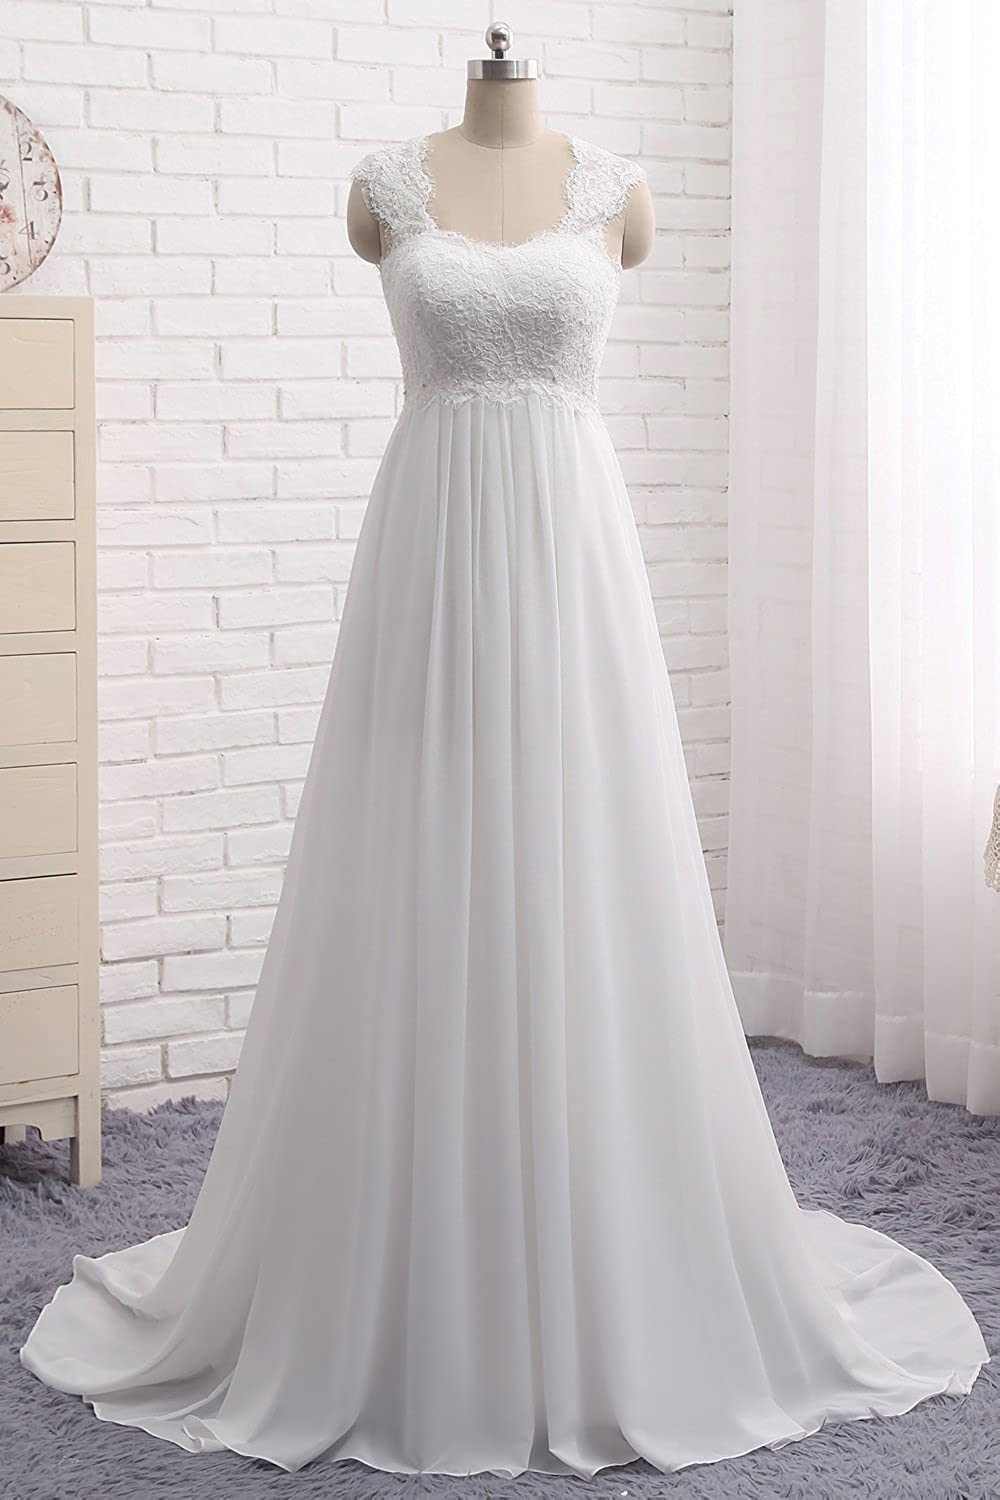 Wedding Dresses for Bride 2021 Sleeveless Lace Petite/Plus Size Bridal Gowns for Civil Wedding for Beach Wedding